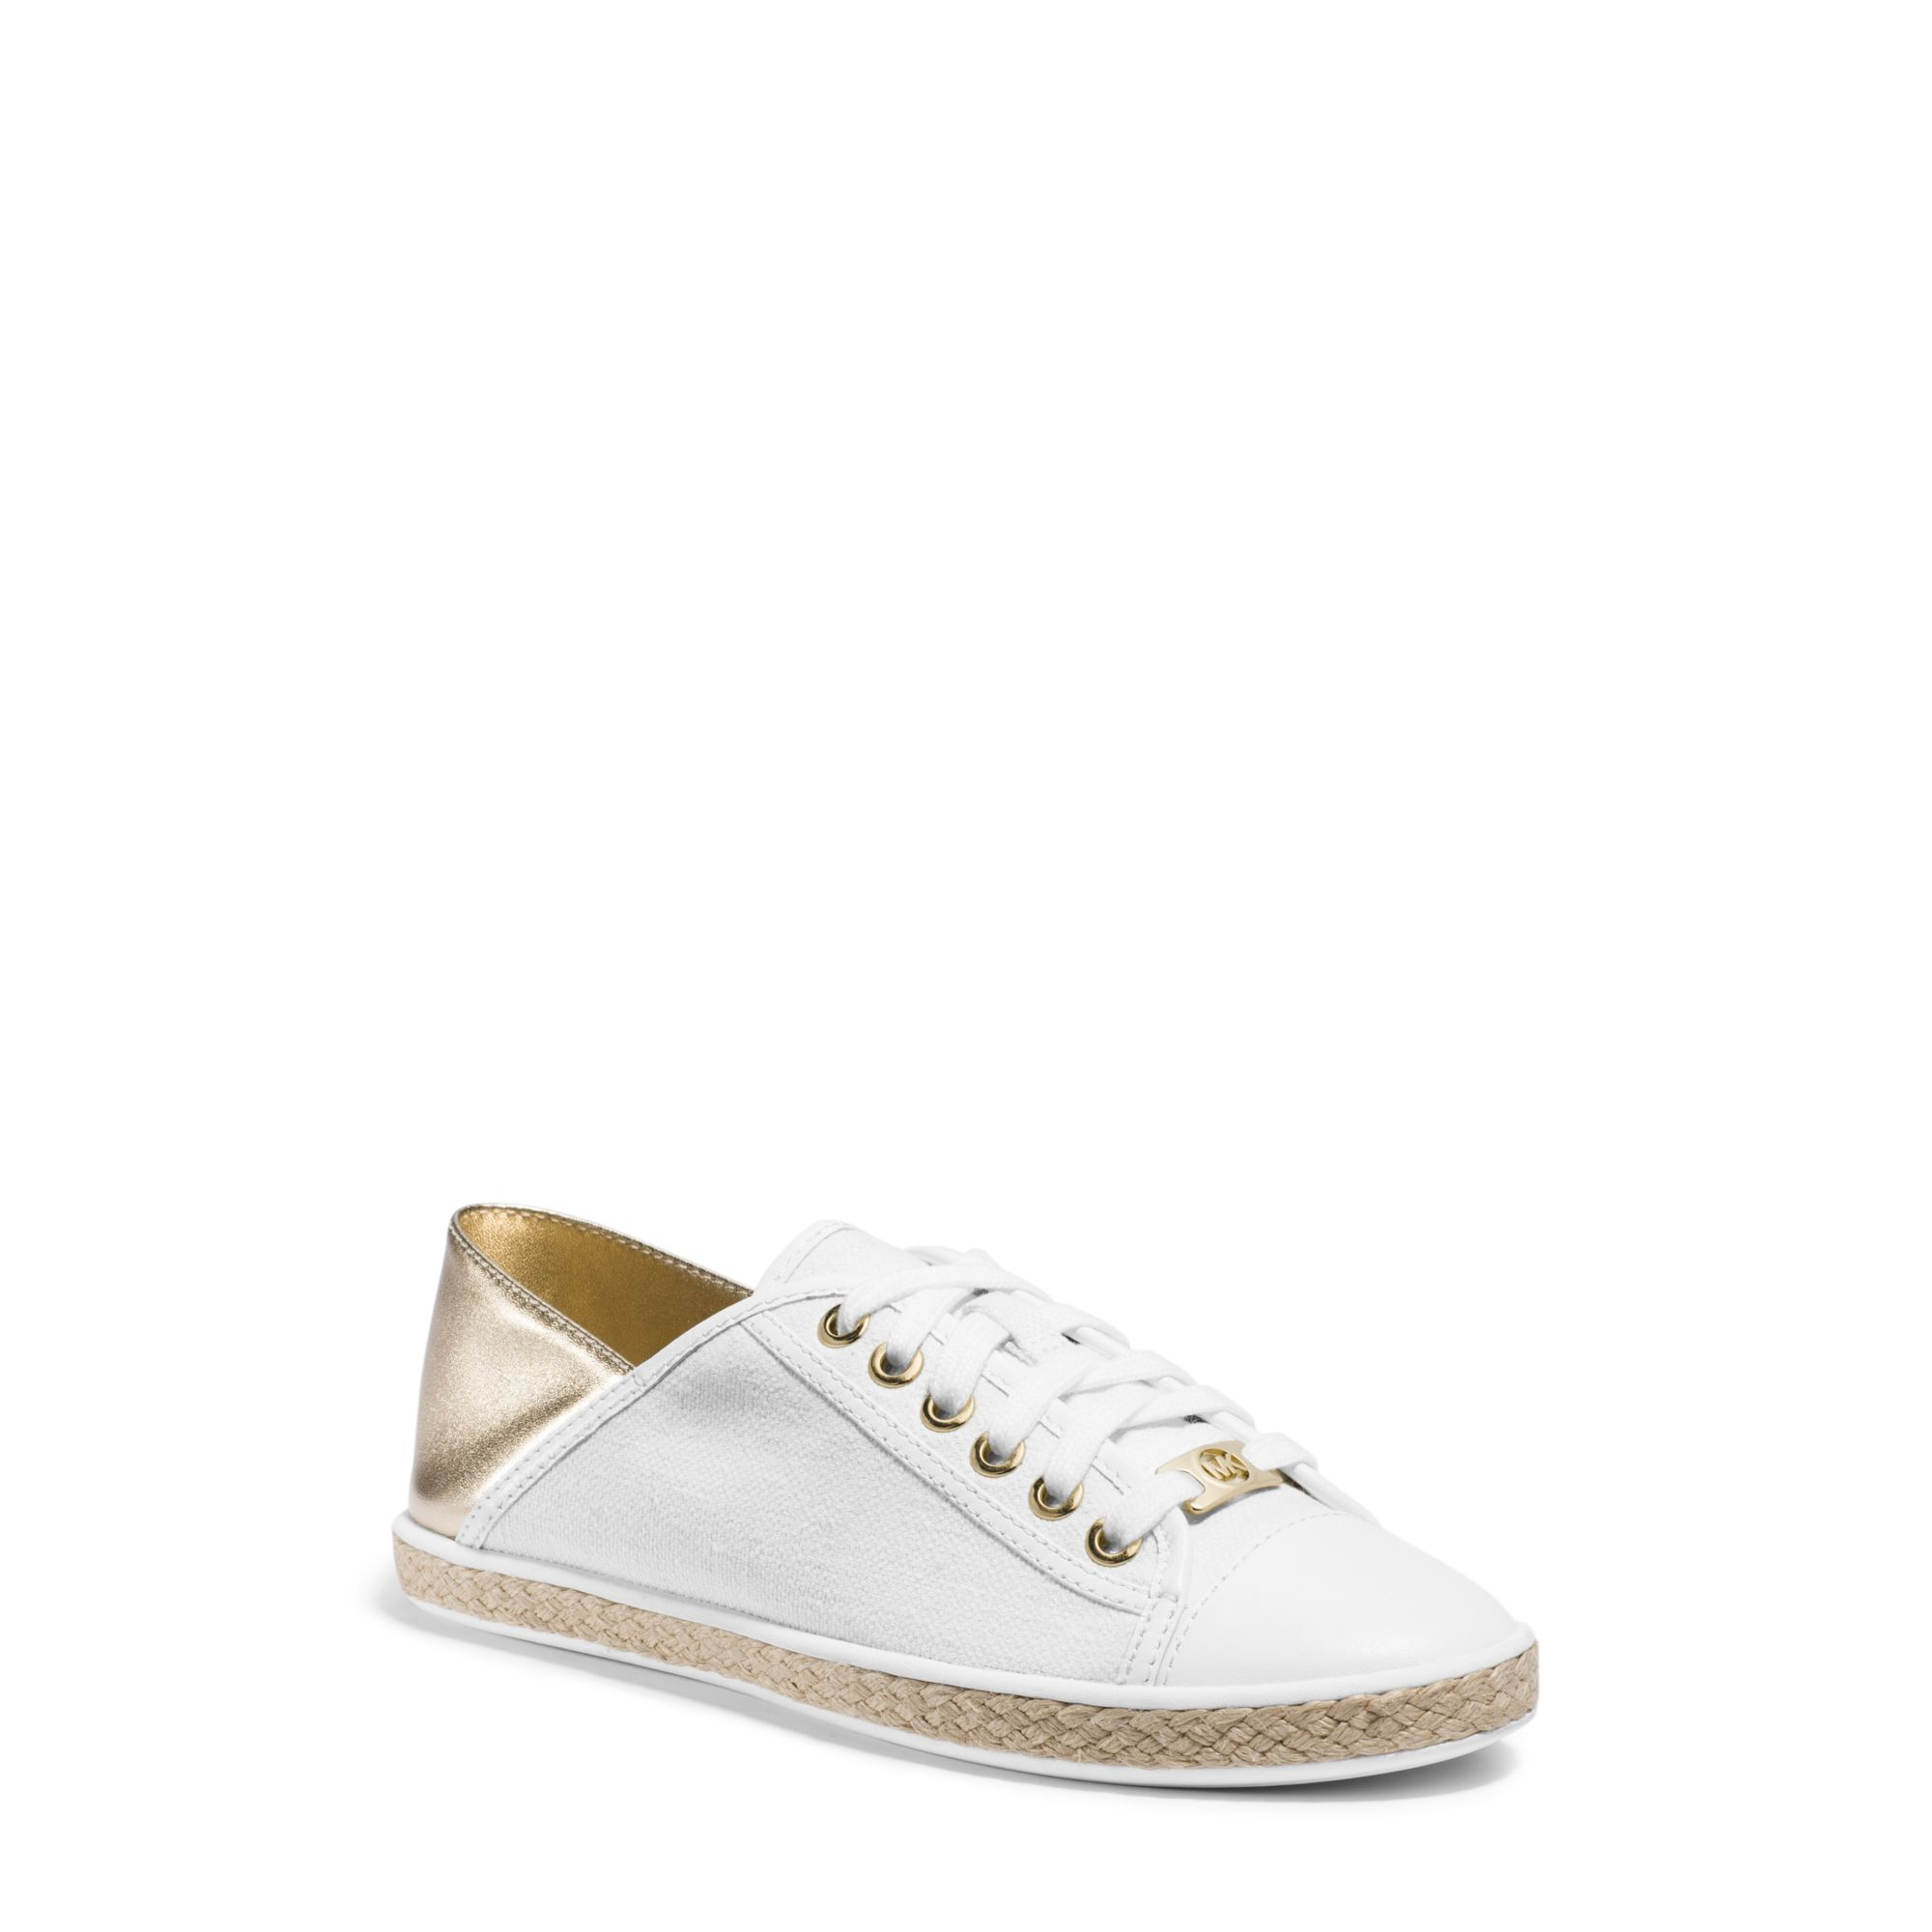 michael kors white and gold sneakers sale on michael kors handbags. Black Bedroom Furniture Sets. Home Design Ideas